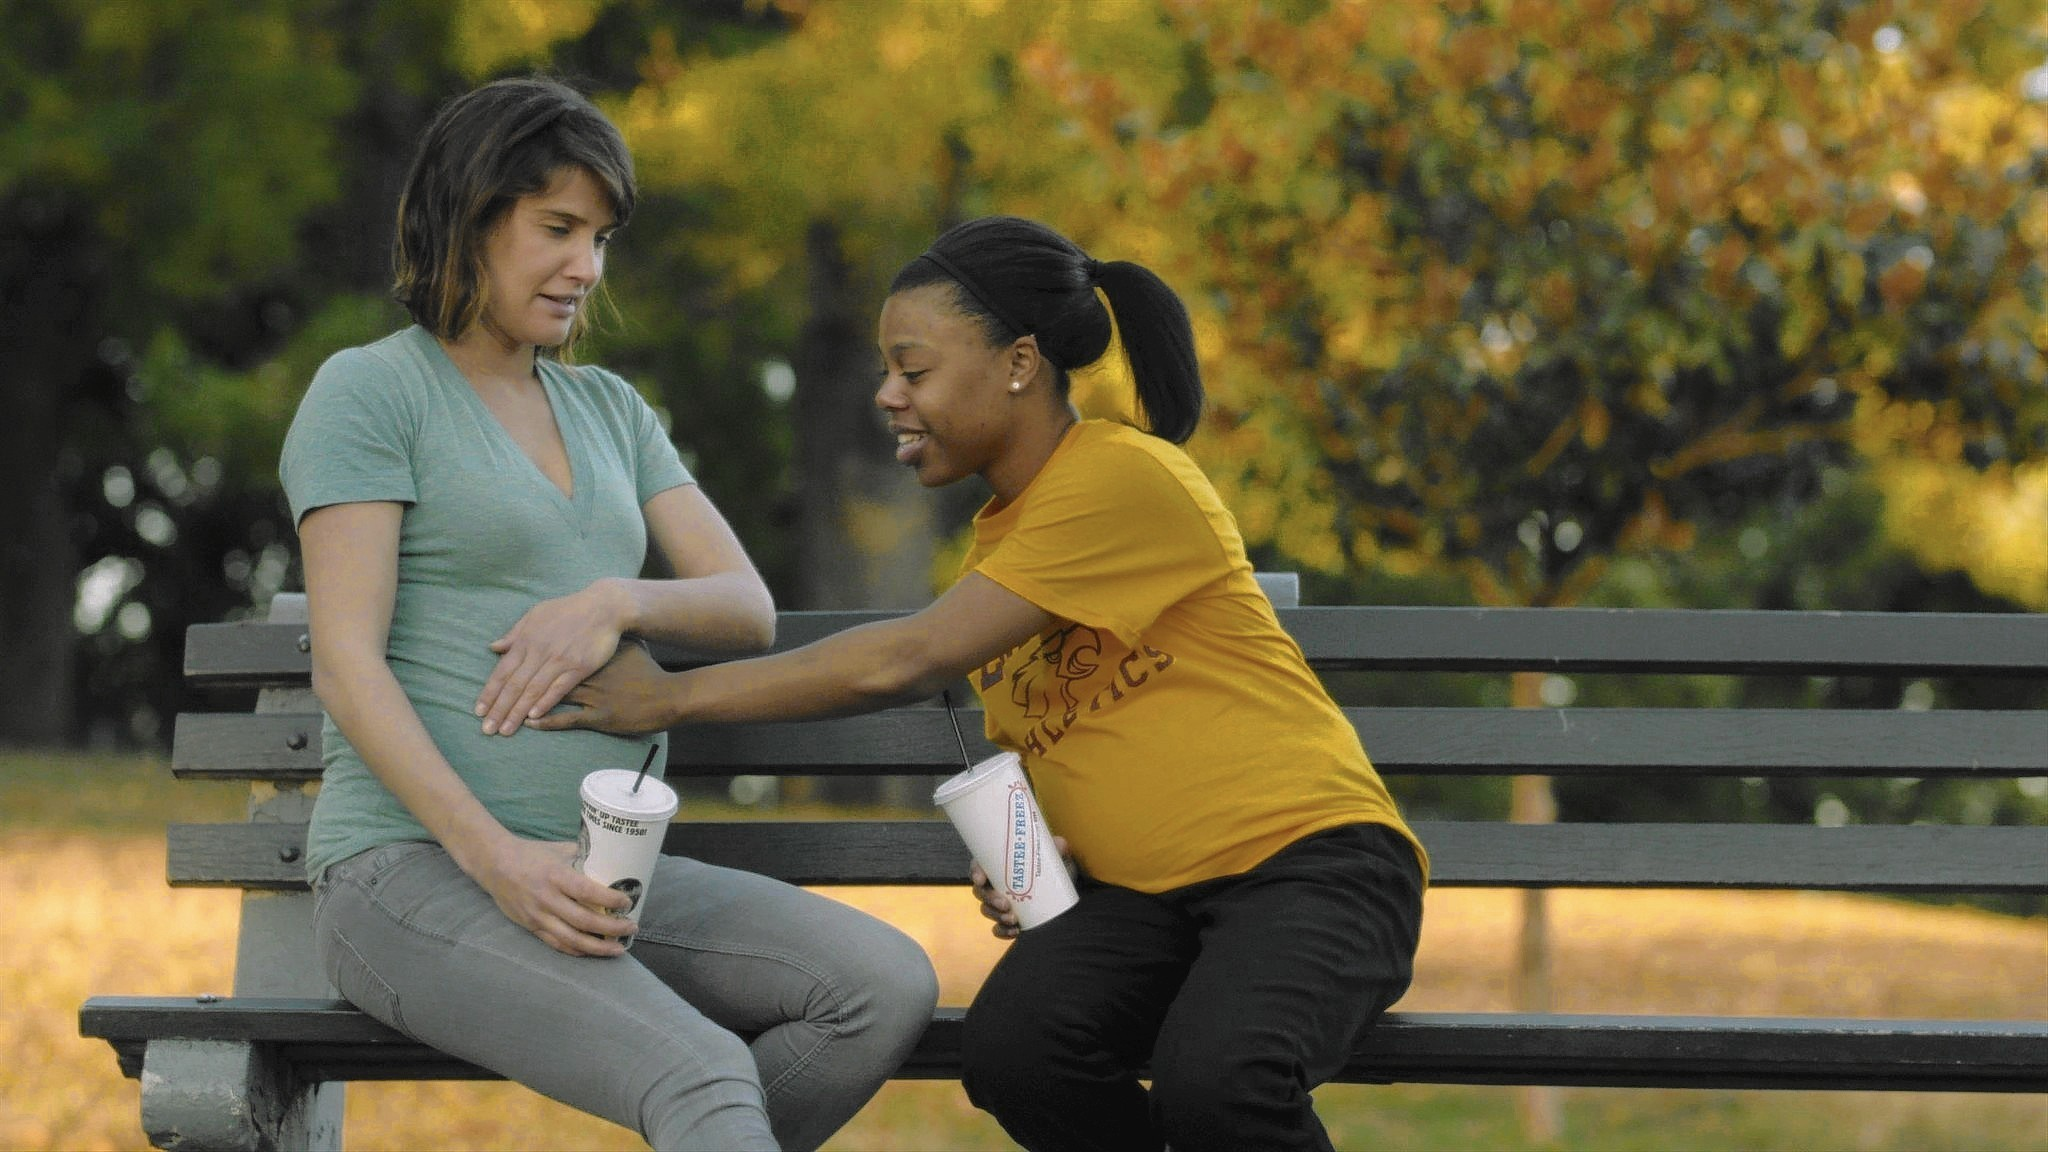 'Unexpected' review: Baby boom